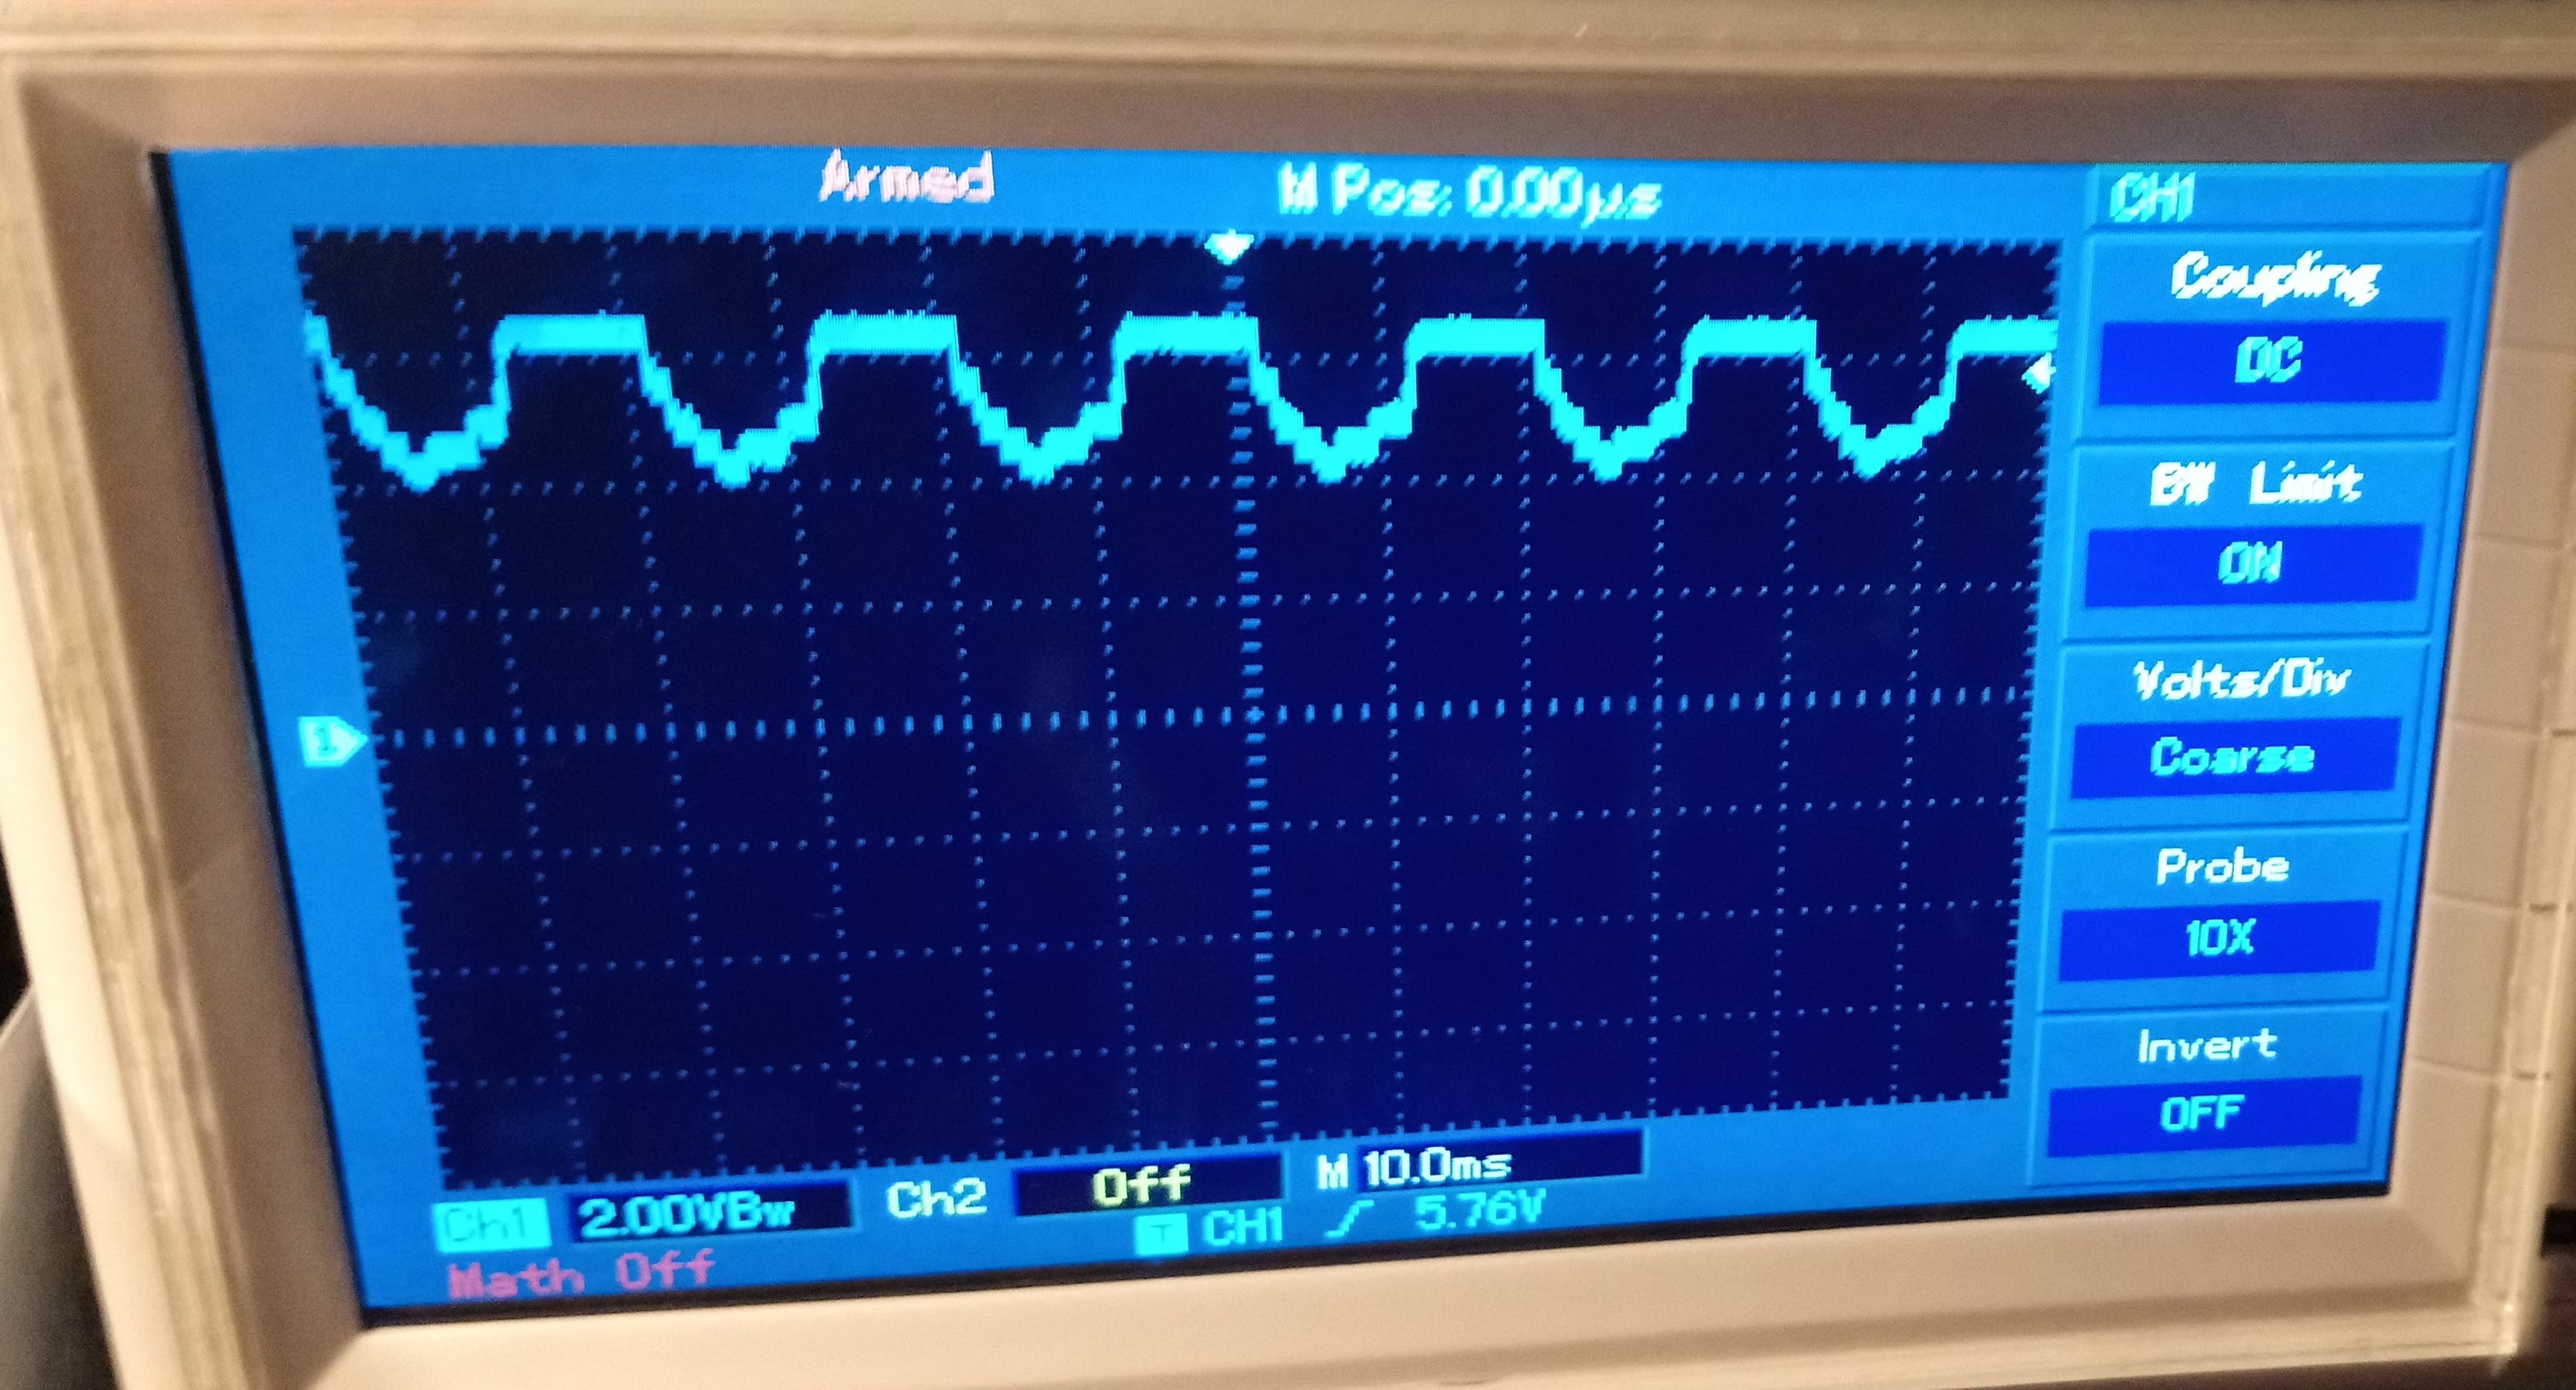 Supply voltage fluctuations when a standard servo is operated